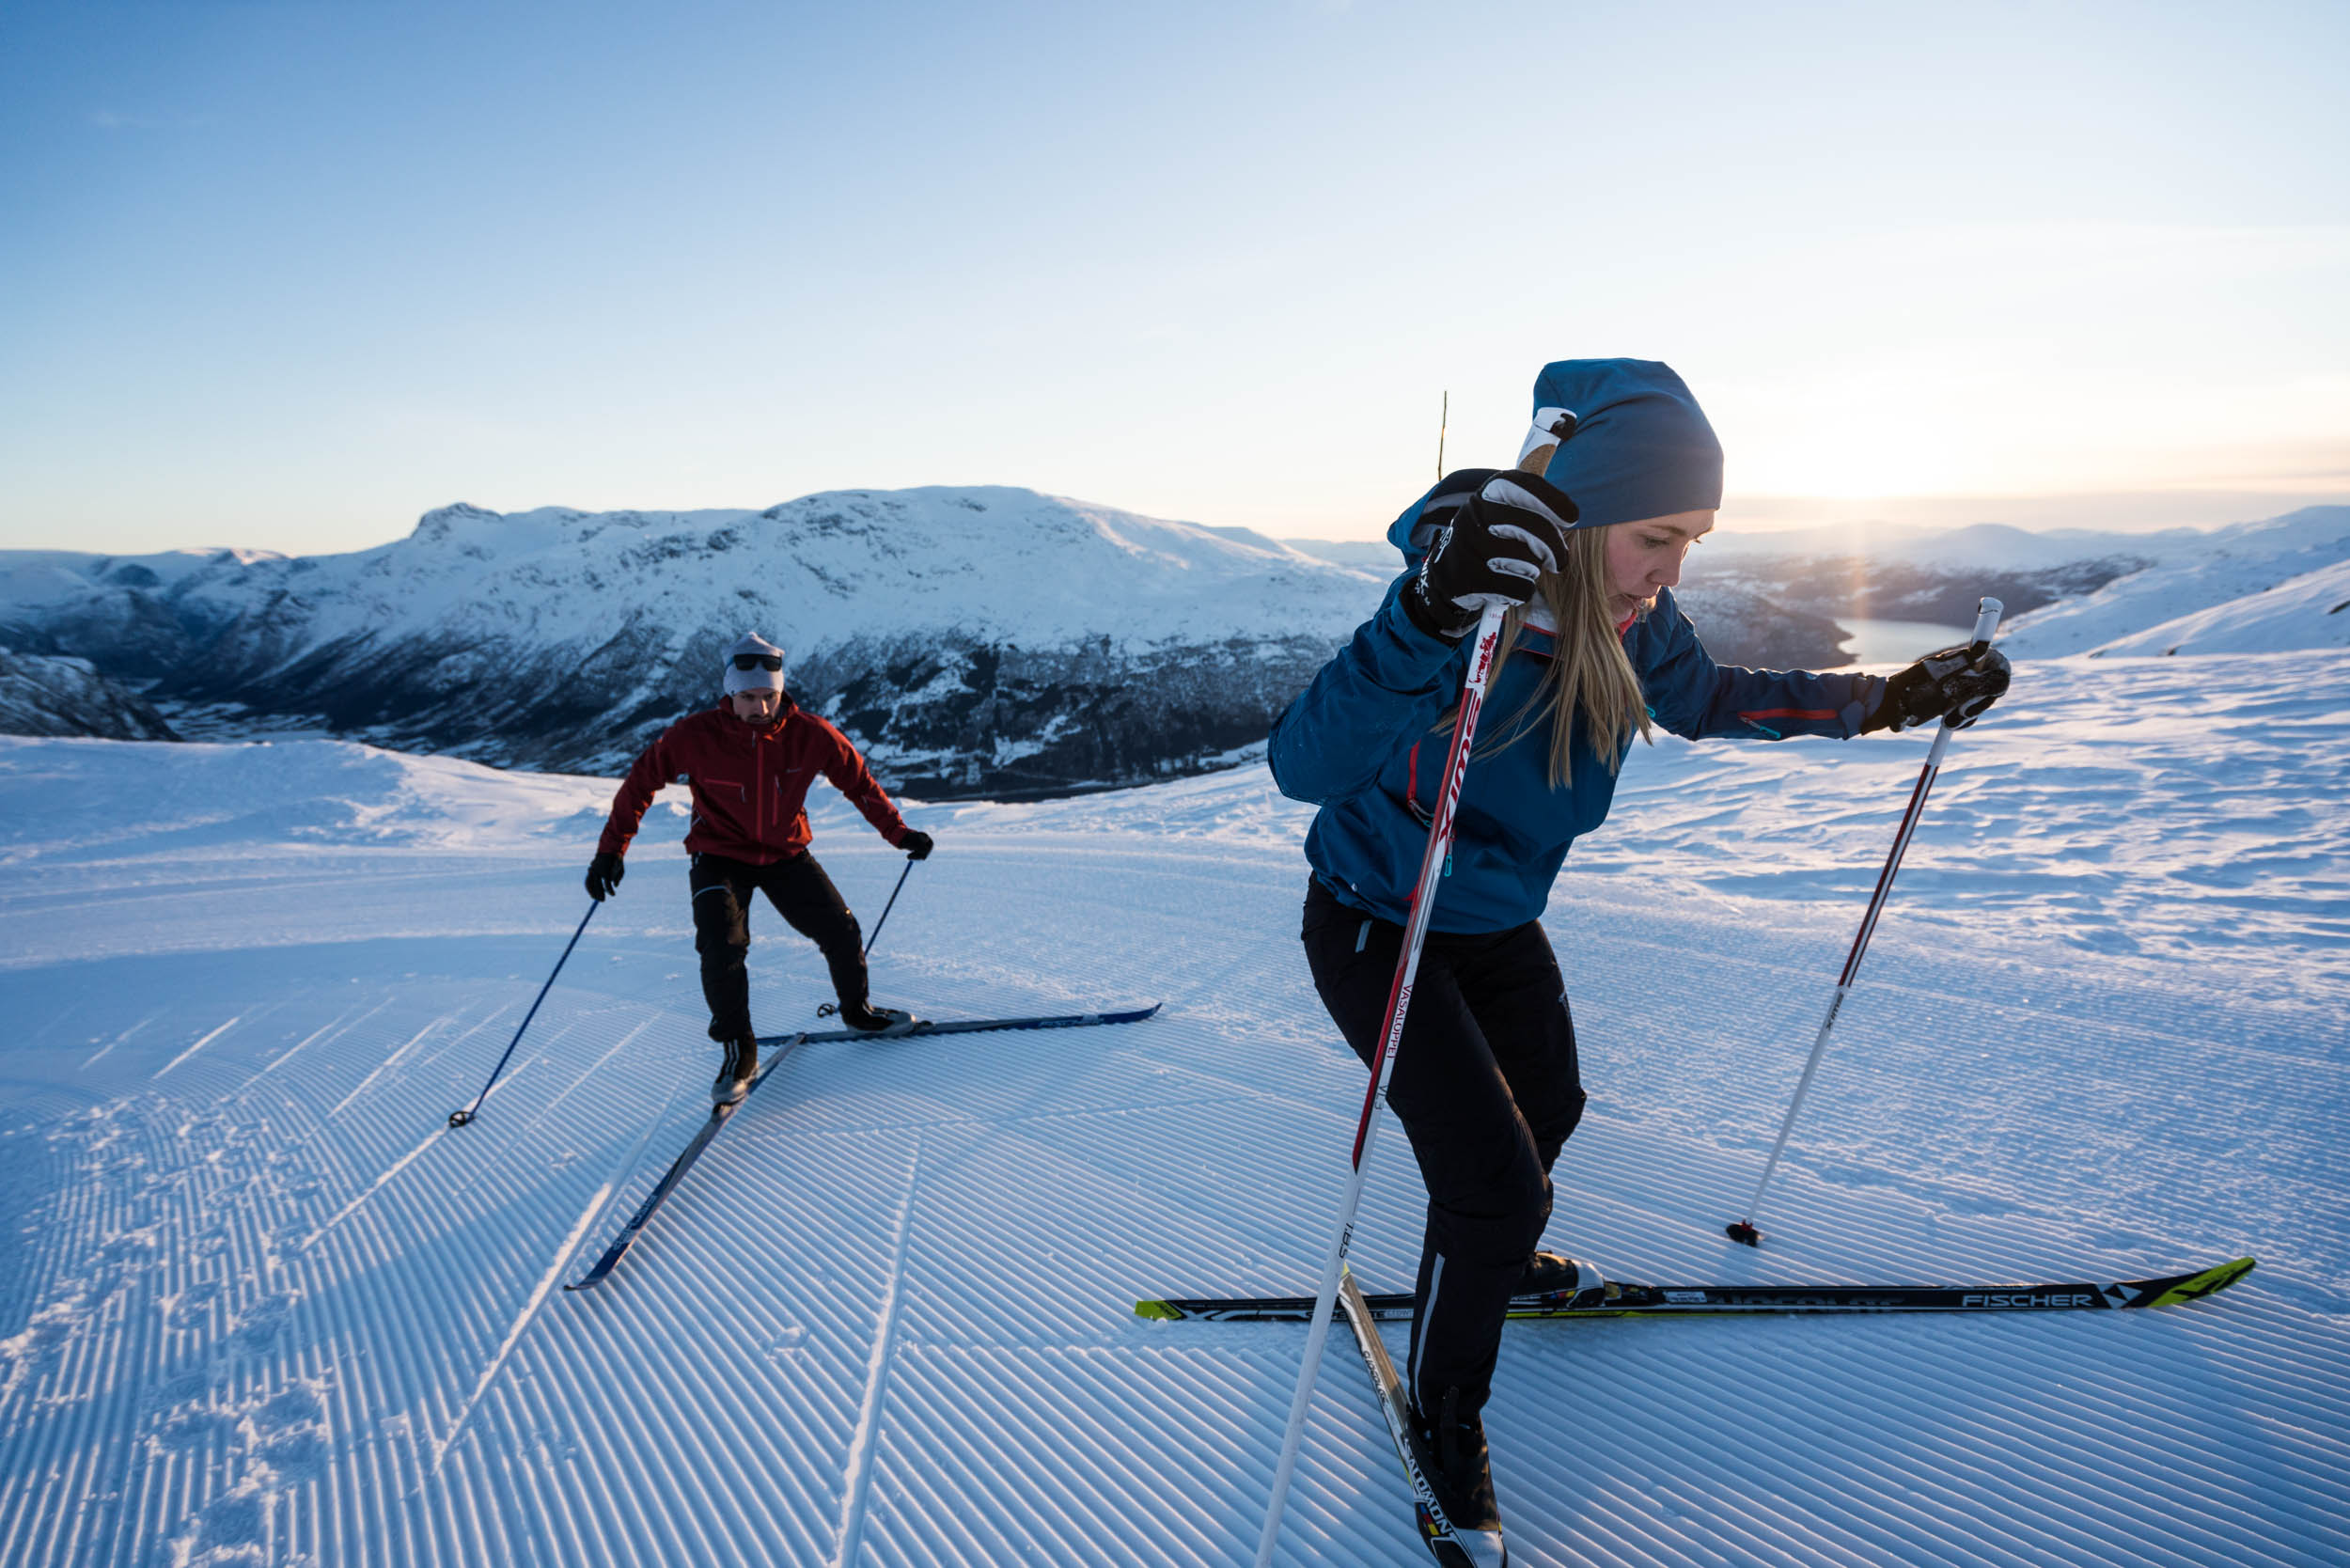 CROSS COUNTRY SKIING   When the weather allows, we'll make groomed Cross-Country tracks with world class view of the fjord, mountains and the Jostedalsbreen Glacier.  See photos.